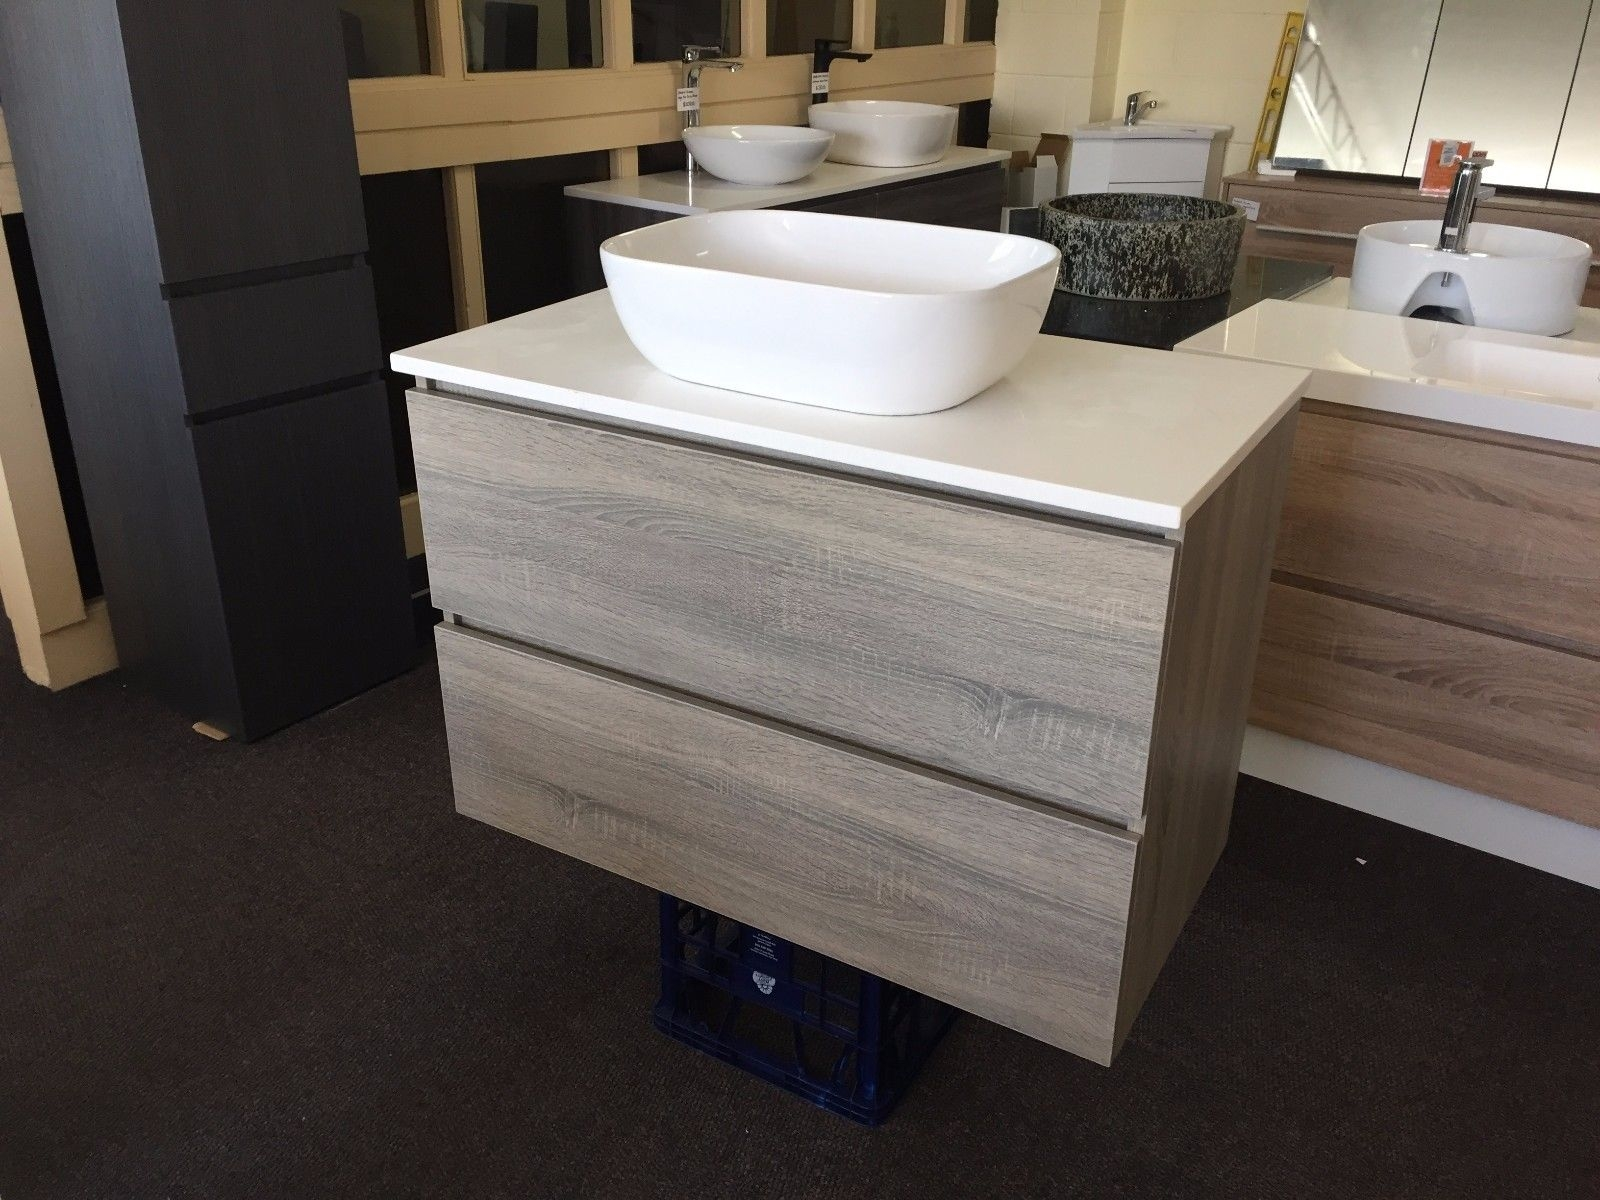 Excellent  1500mm White Oak Timber Wood Grain Floor Standing Bathroom Vanity